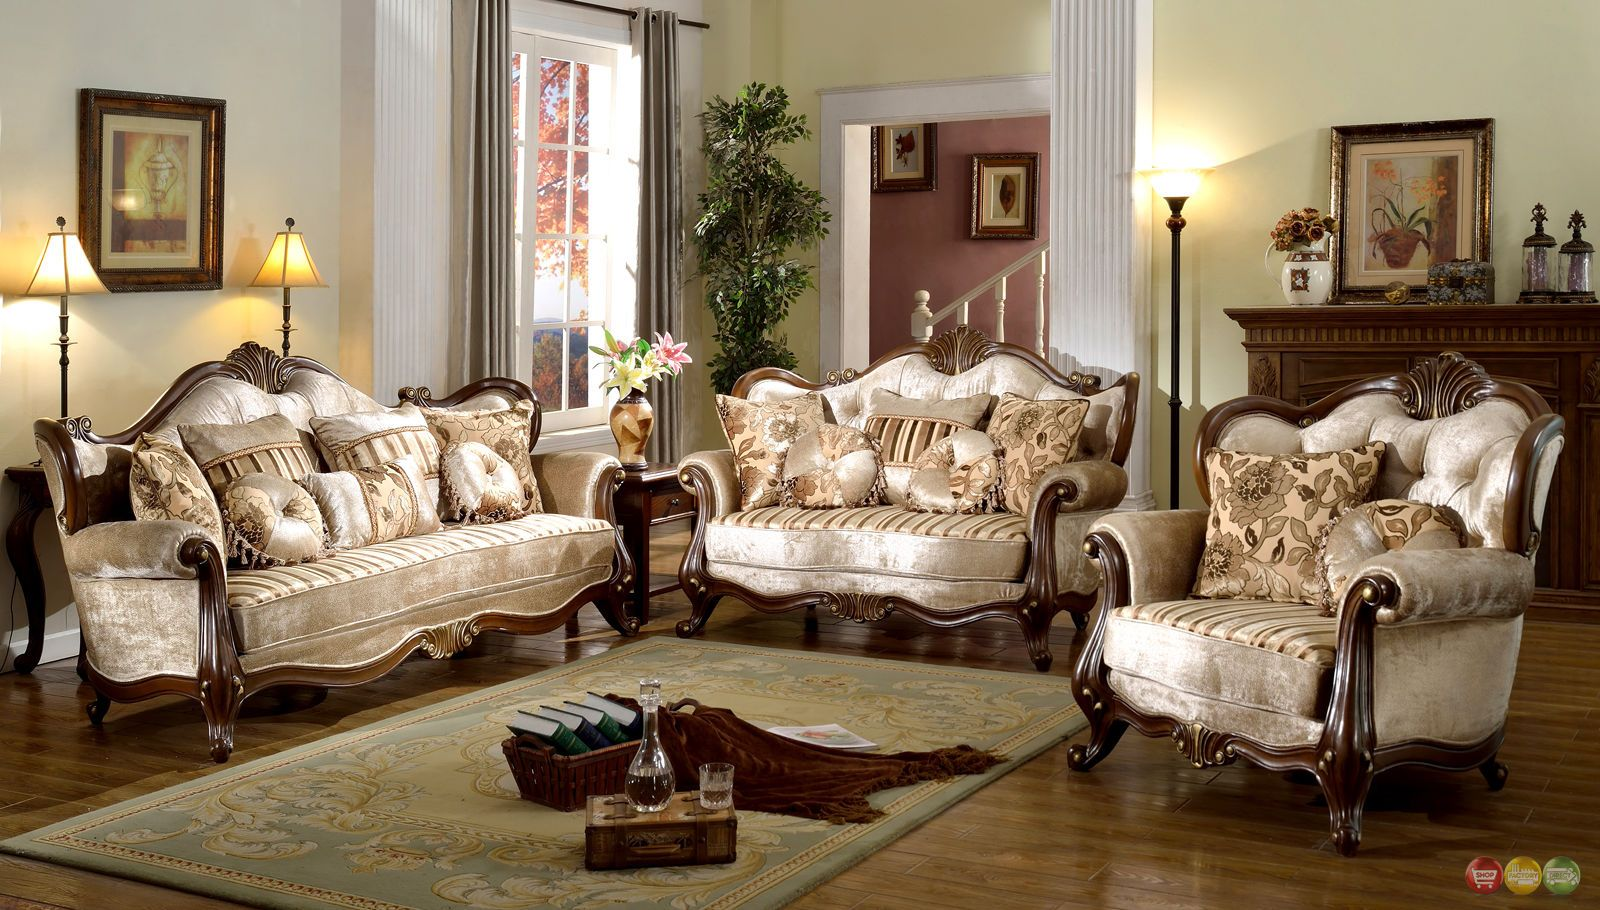 Ebay Sofa Sets Details About French Provincial Formal Antique Style 2pc Sofa